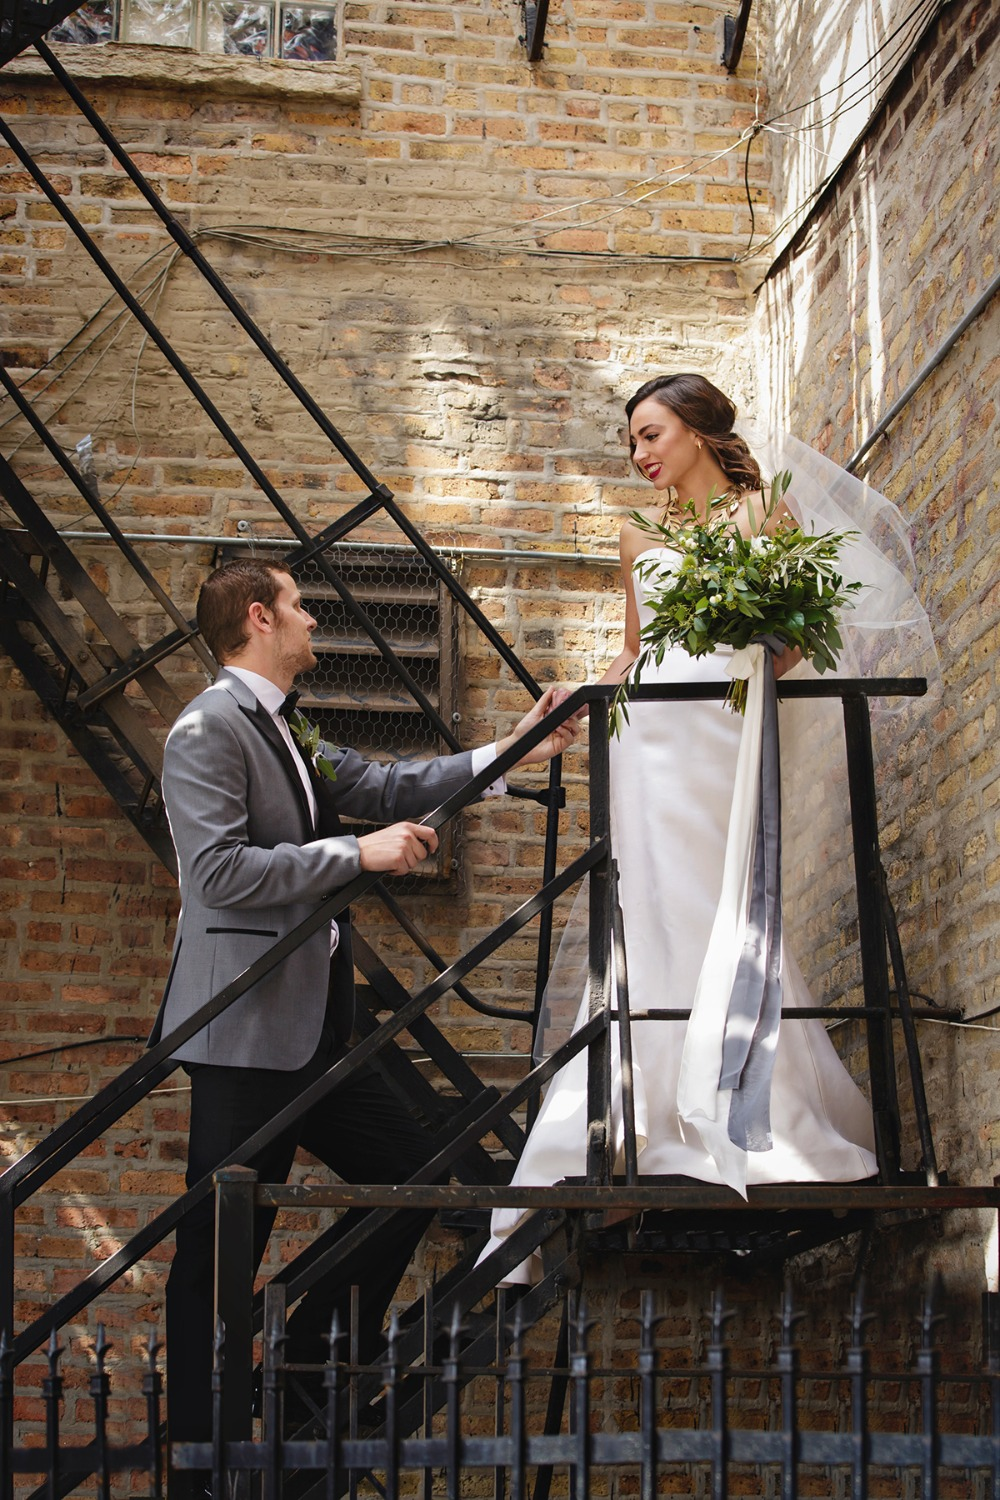 sweet fire escape wedding portrait idea